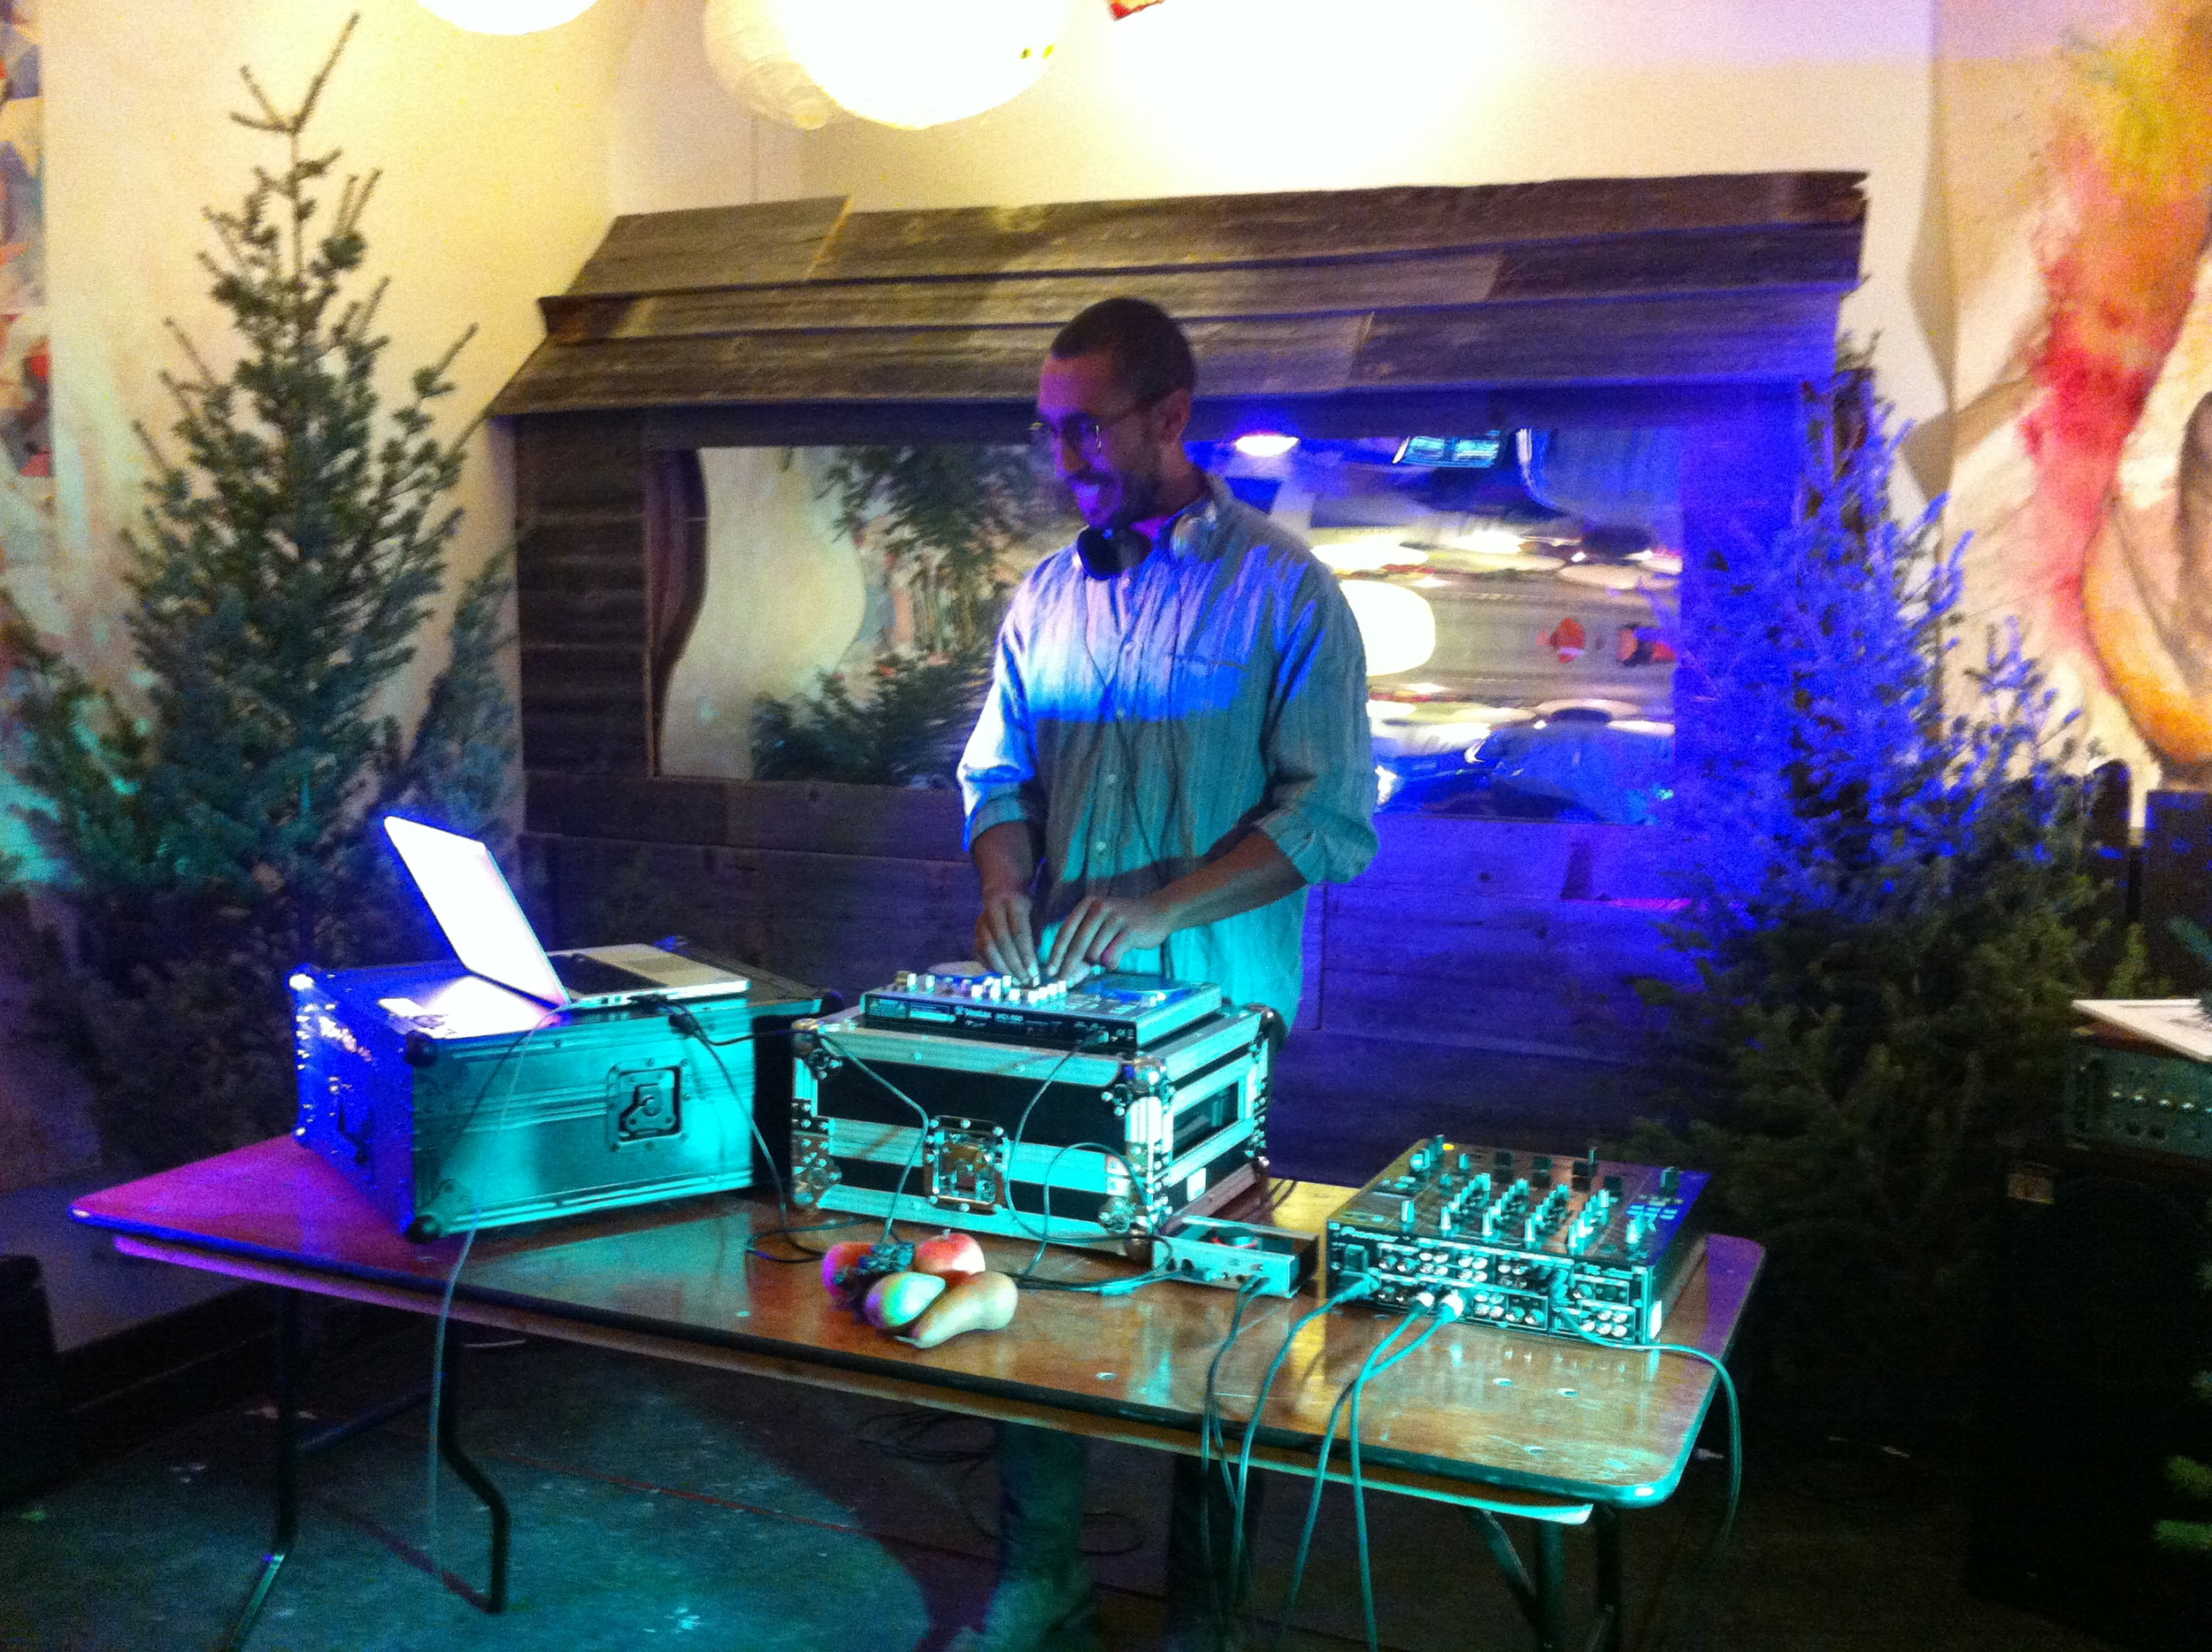 DJ cranks out the tunes